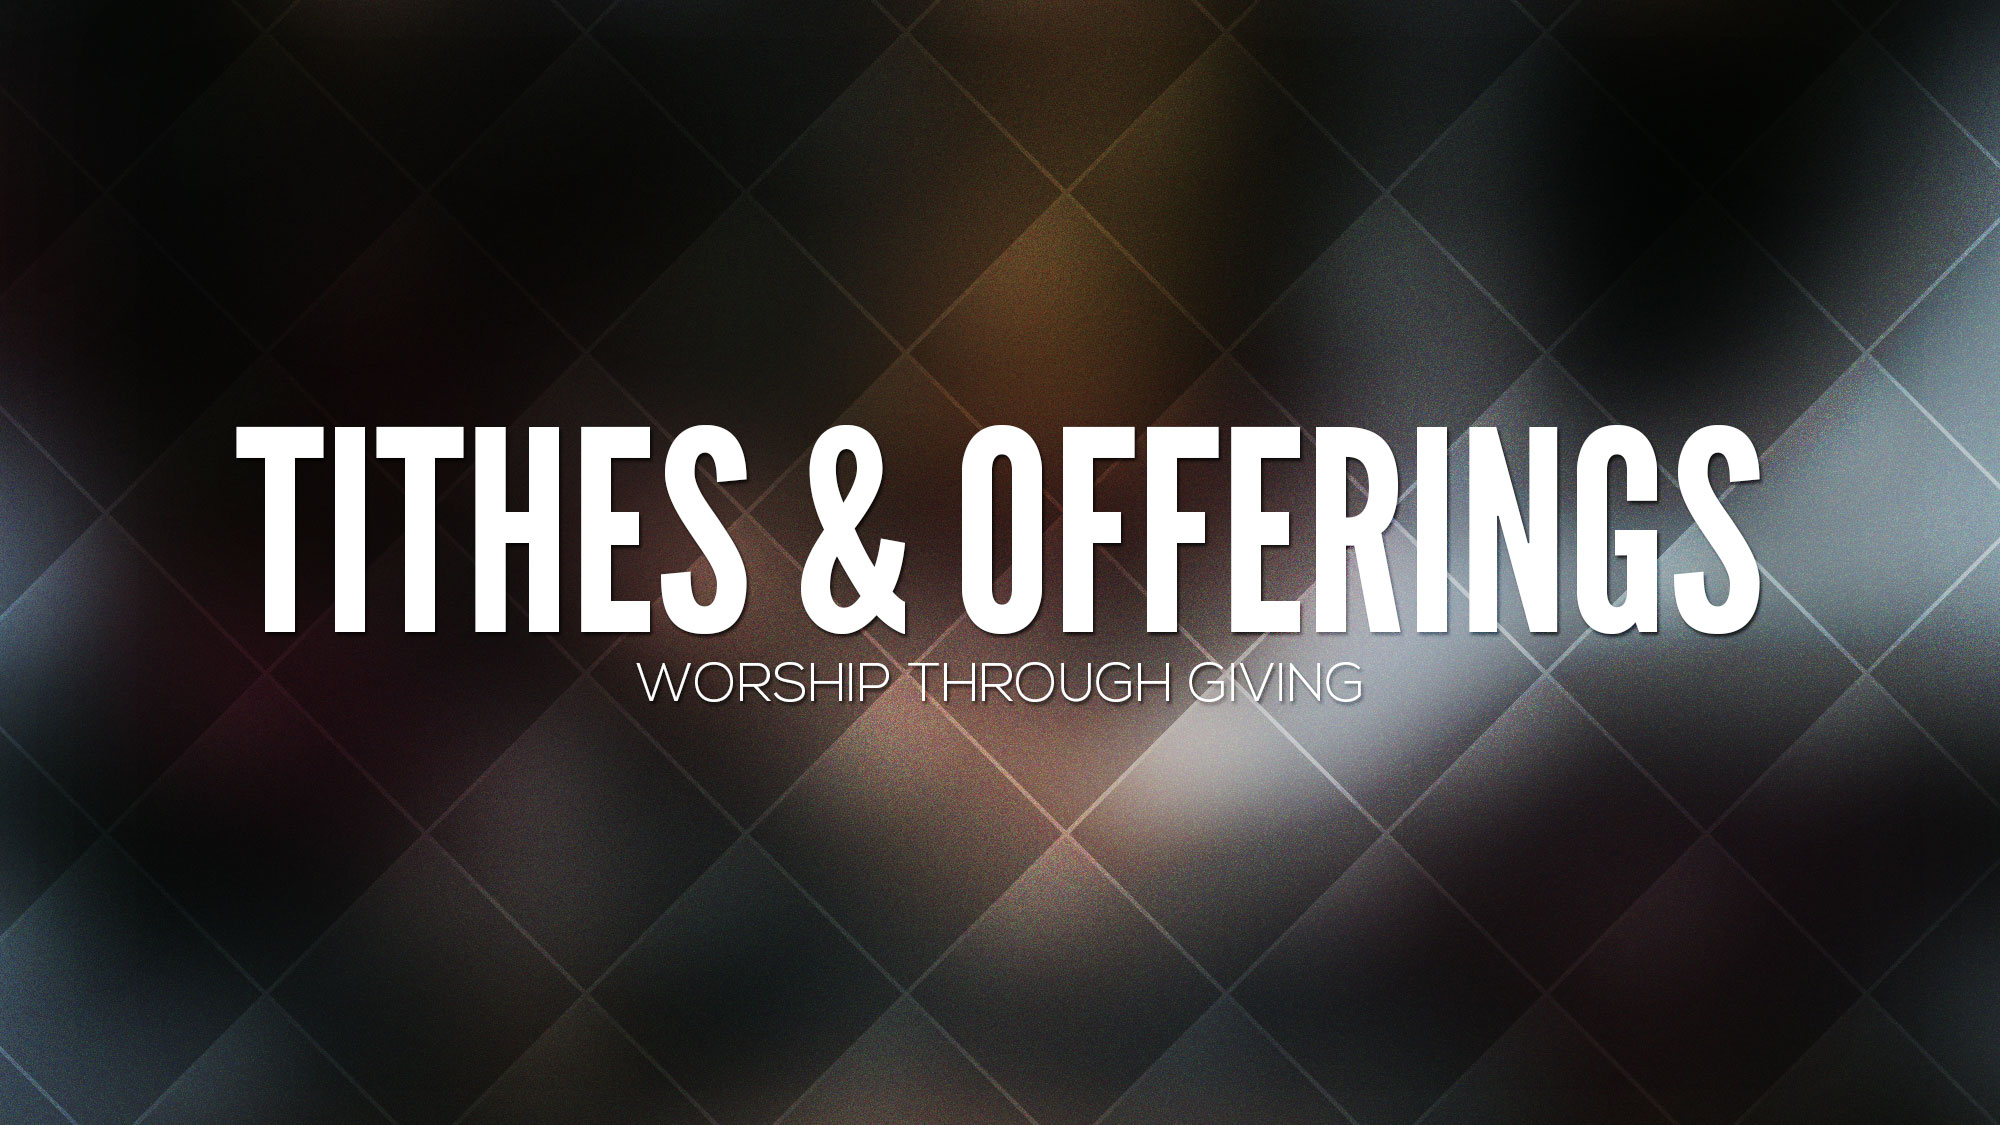 Tithes & Offering – HOPE INTERNATIONAL CHURCH AND MINISTRIES